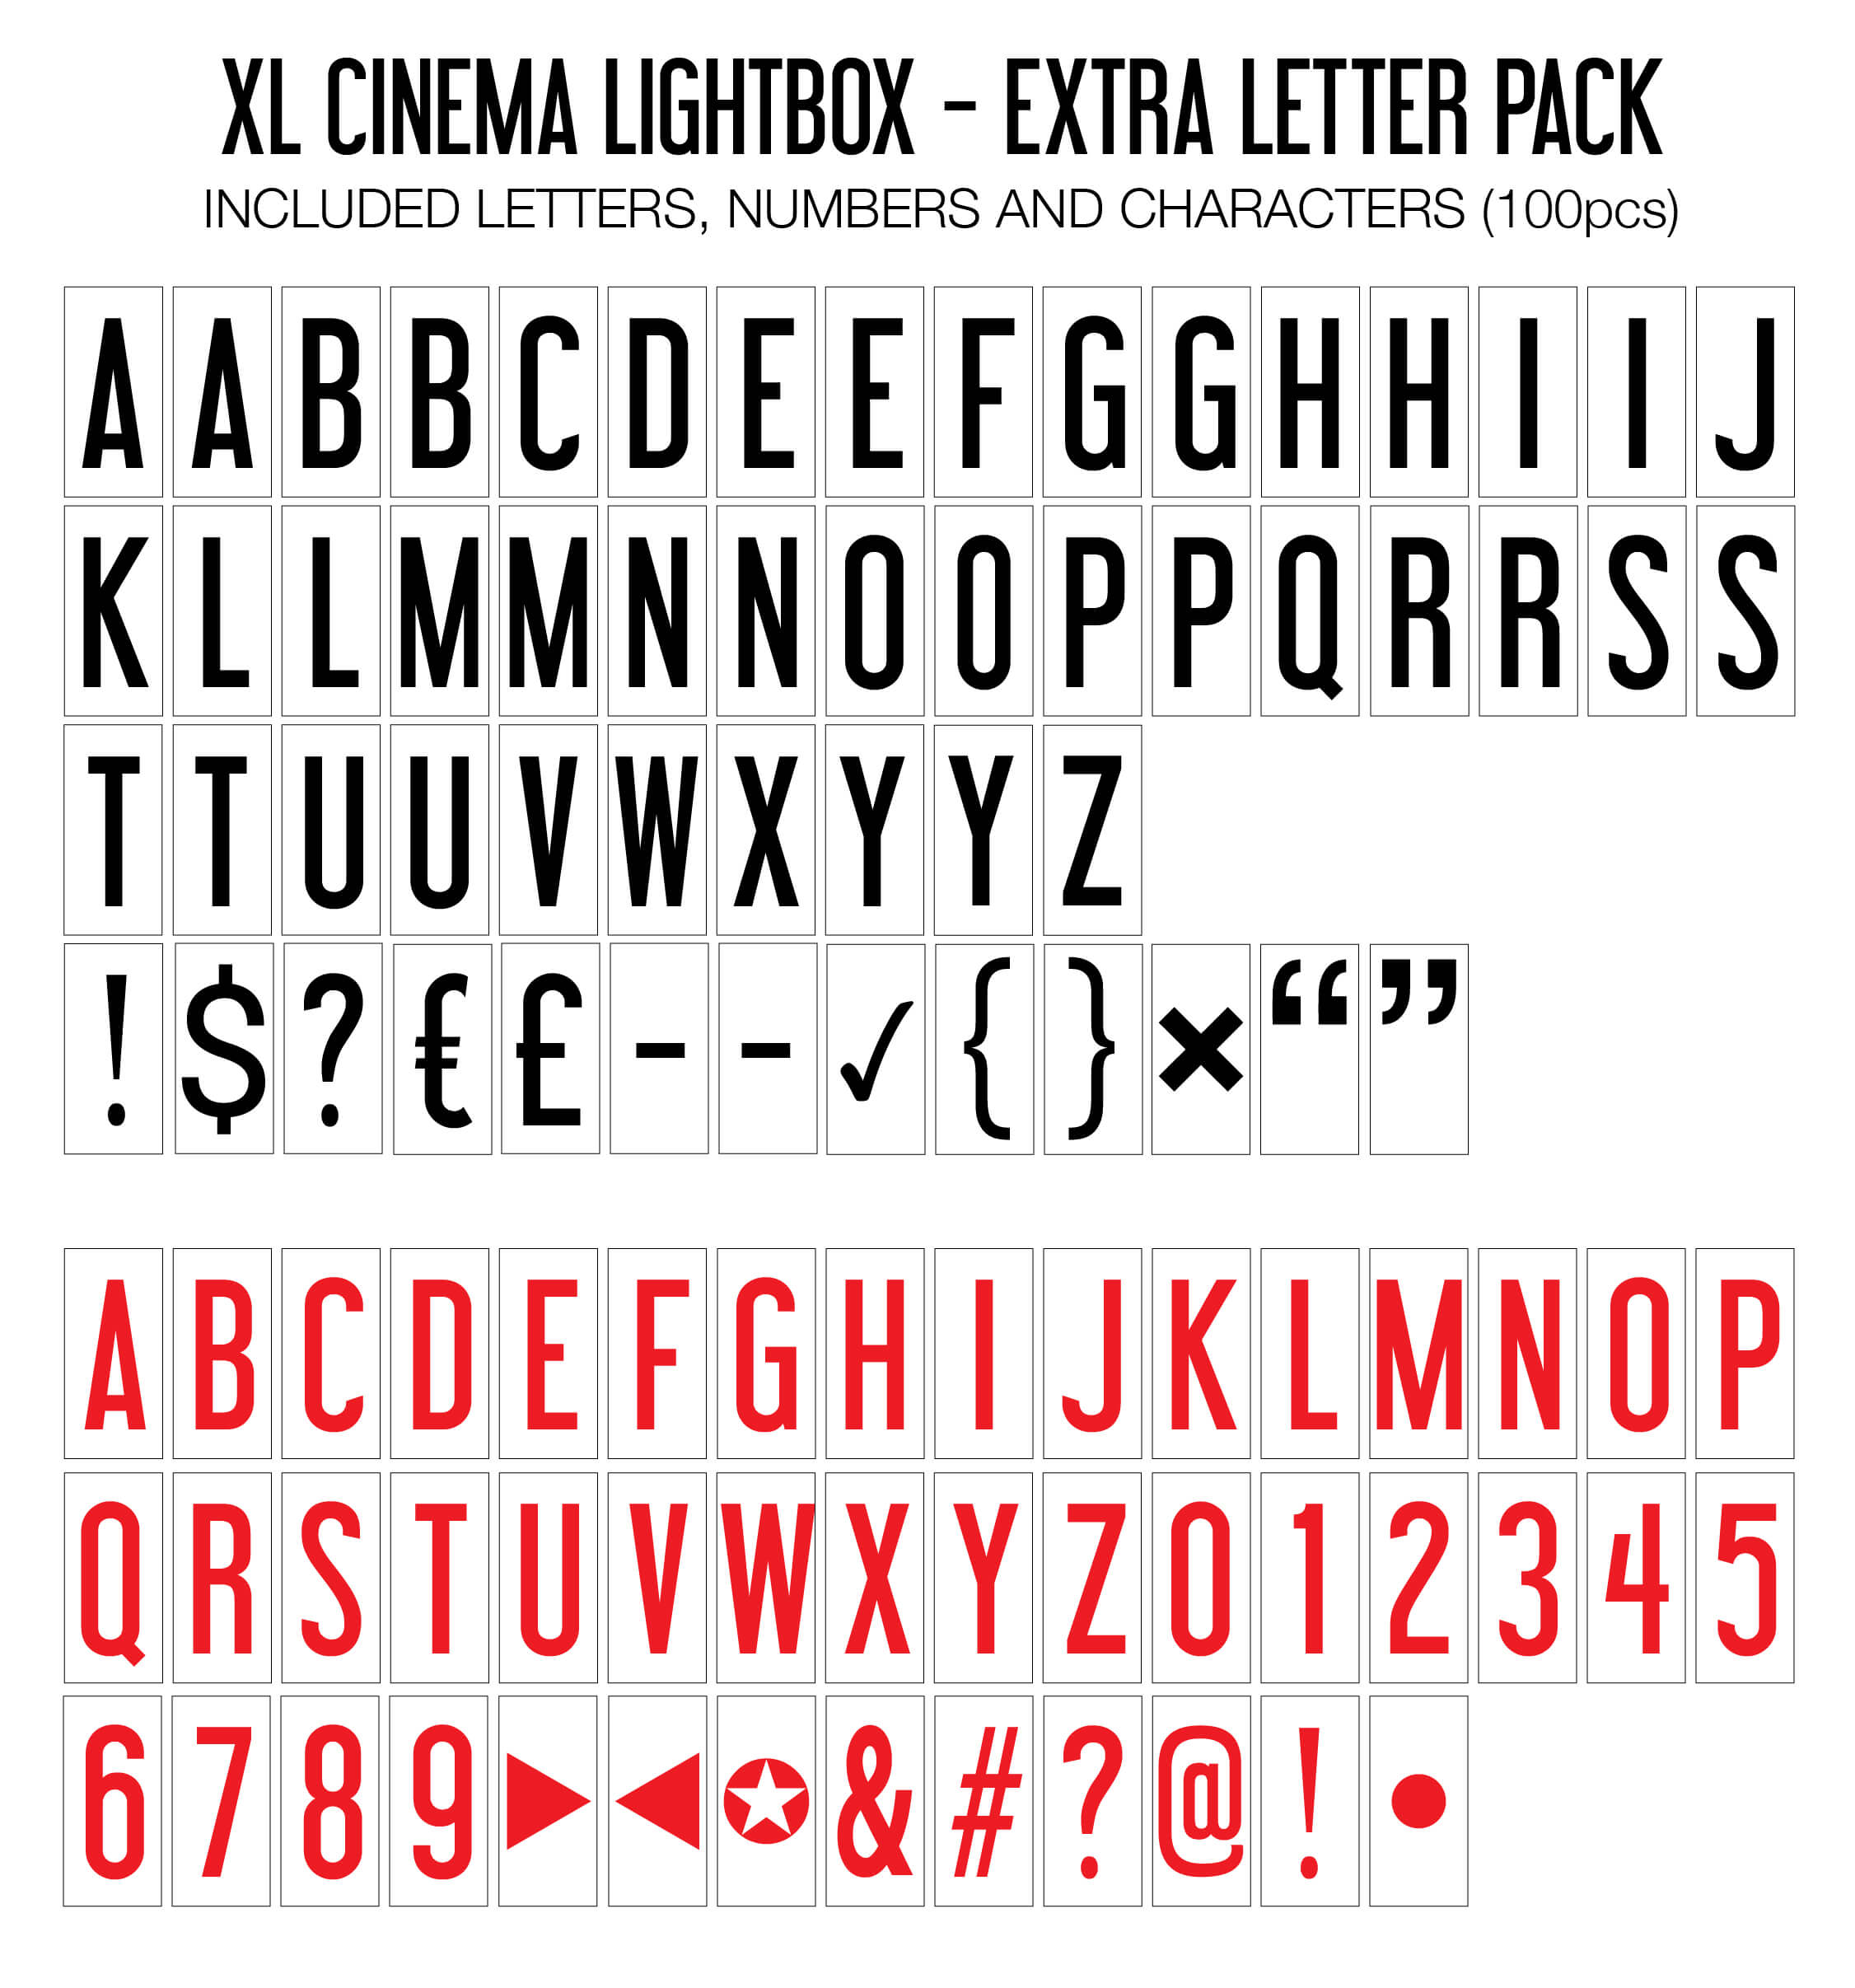 Light Box Letter and Symbols Packs